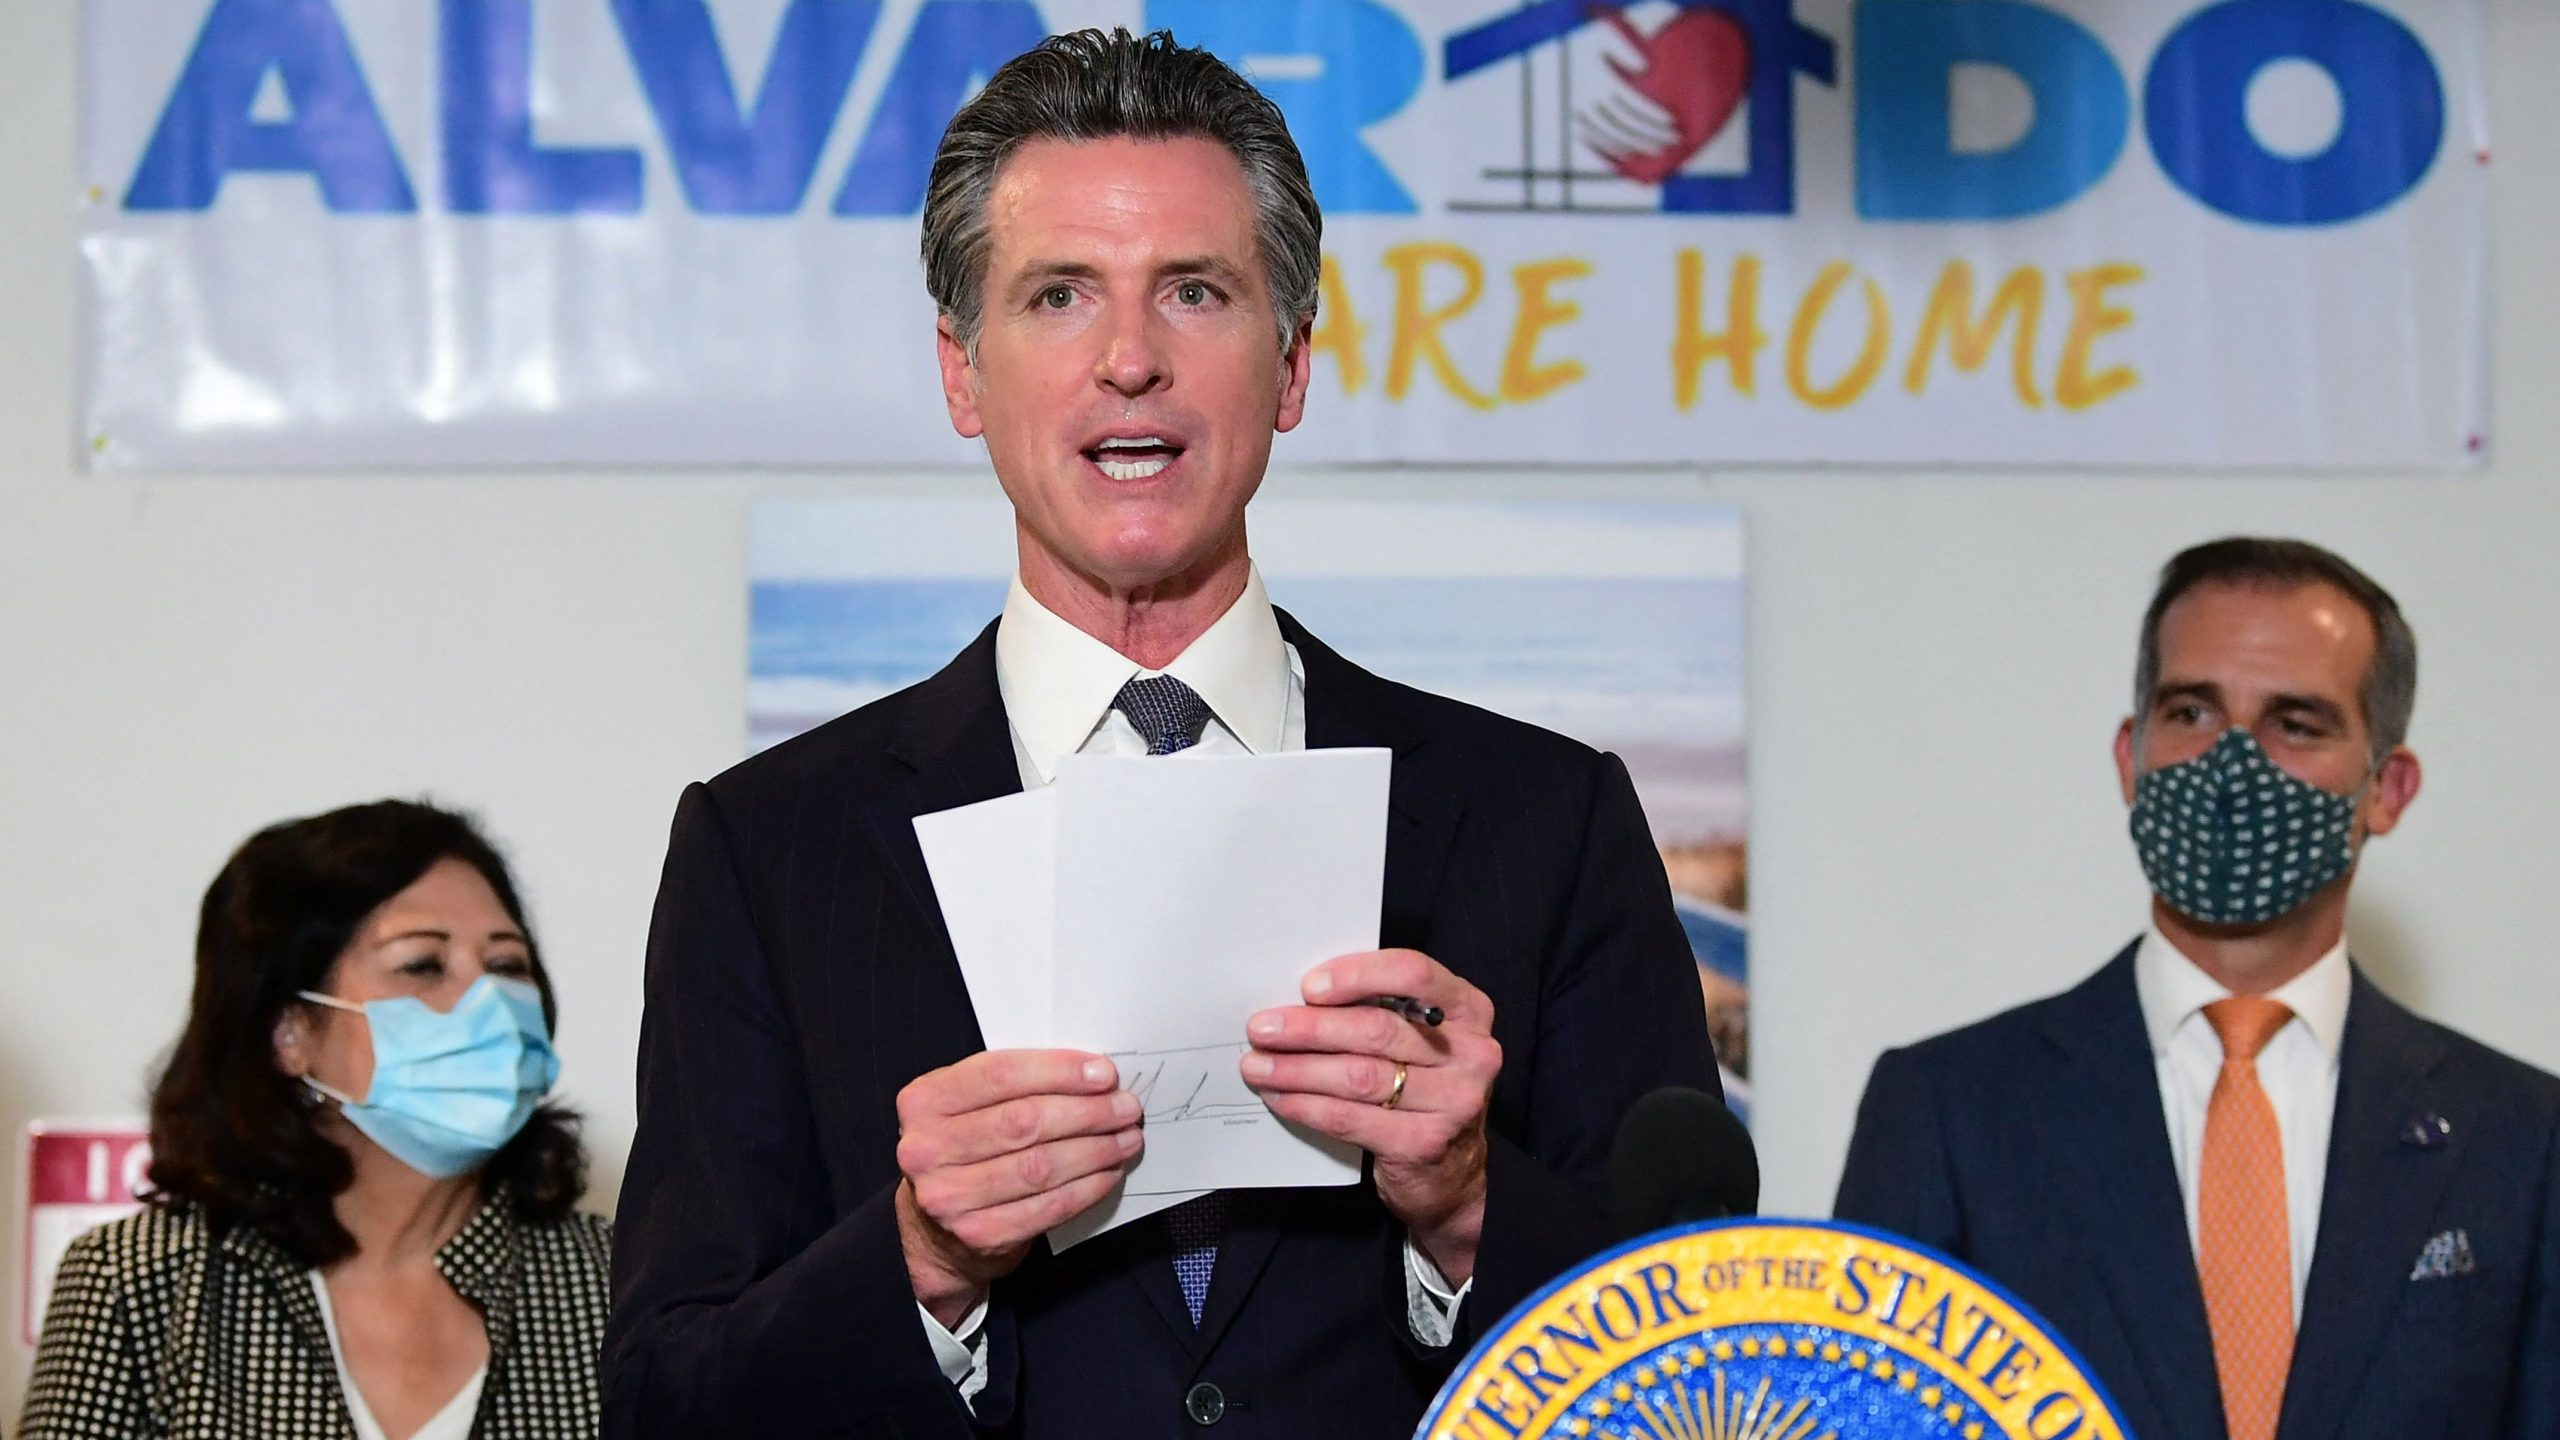 California Gov. Gavin Newsom, flanked by Los Angeles Mayor Eric Garcetti, at right, displays the seven bills signed as he joins city leaders in Los Angeles in celebration of legislation to support the state's expansion of mental health services and behavioral health housing as part of California's package to address the homeless crisis on Sept. 29, 2021. (Frederic J. Brown / AFP / Getty Images)